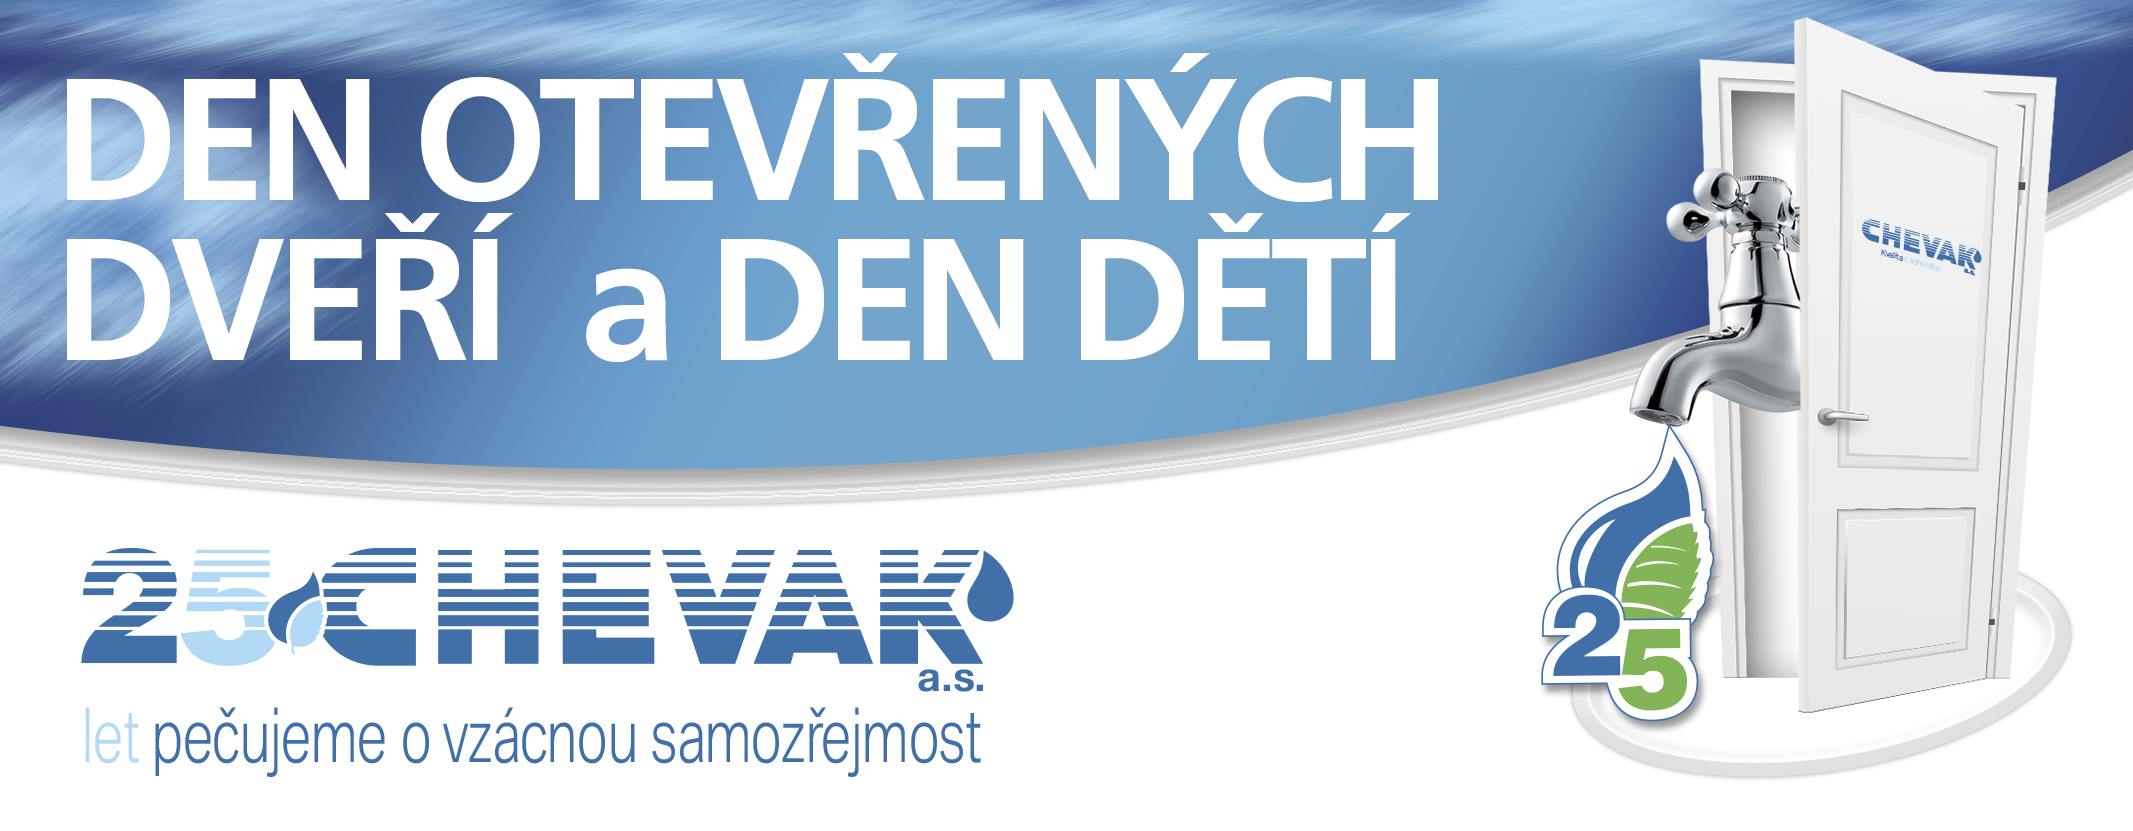 Chevak OpenDay Inzerát web pgm